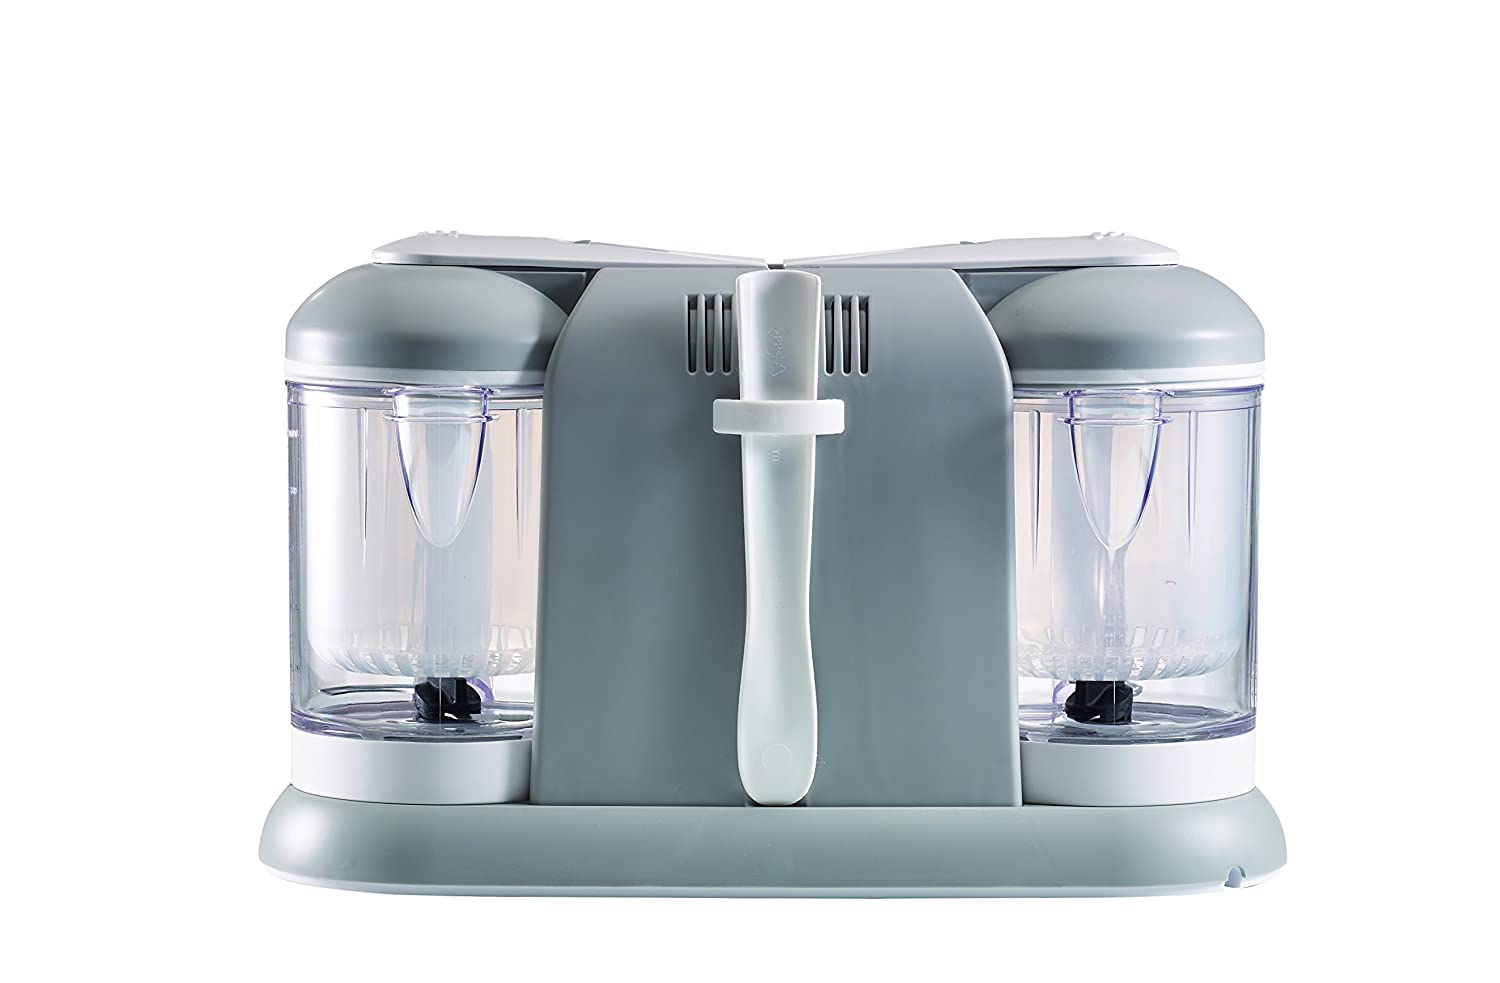 BEABA Babycook Plus 4 in 1 Steam Cooker and Blender Cloud Dishwasher Safe 9.4 cups